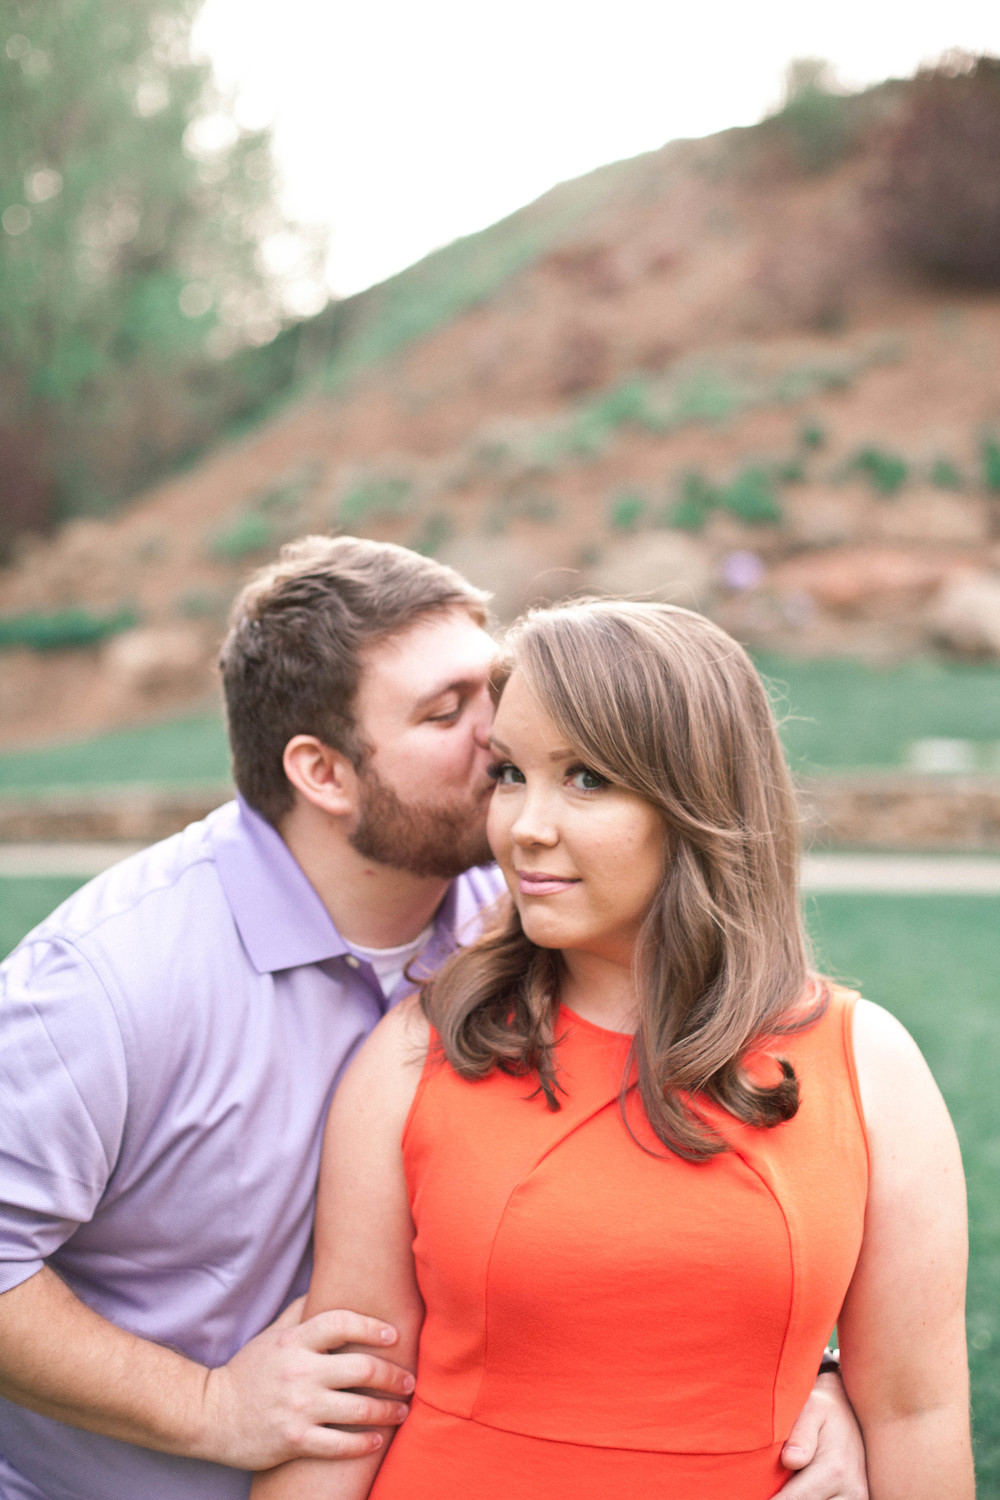 zach_gabbie_engagement_poured_out_photography-40.jpg